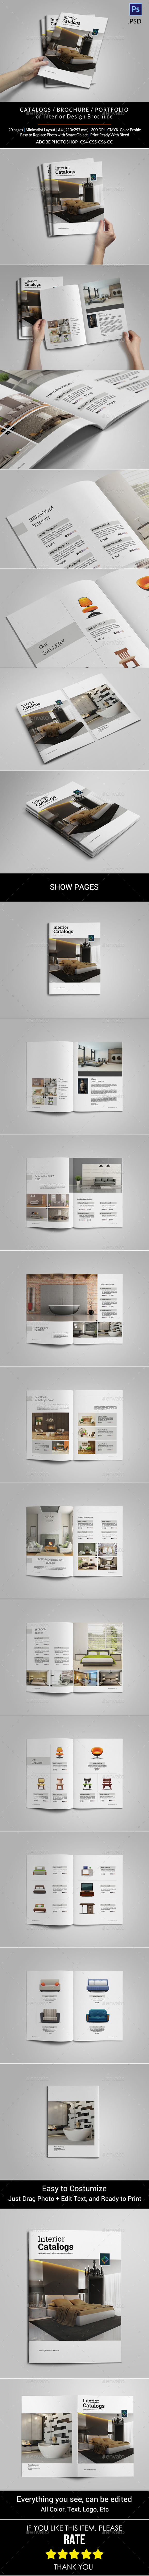 GraphicRiver Catalogs Brochure 11064116